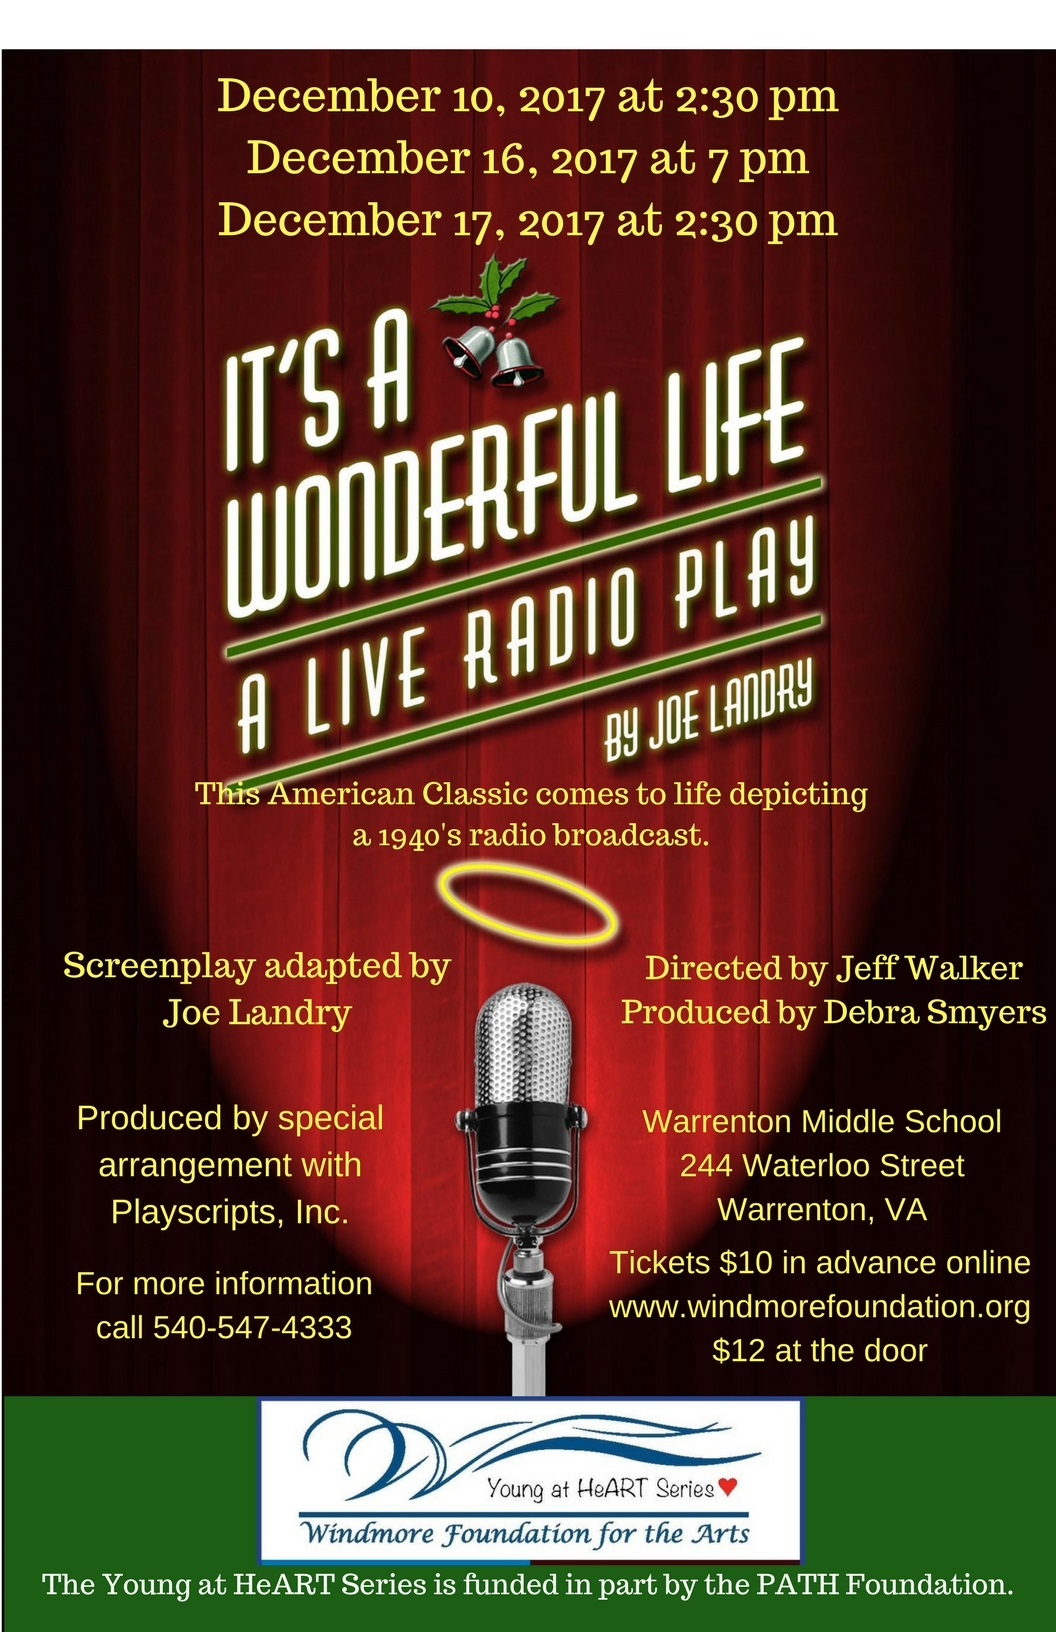 """It's a Wonderful Life - A Live Radio Play"" Saturday December 17, 2017 at 2:30 pm"